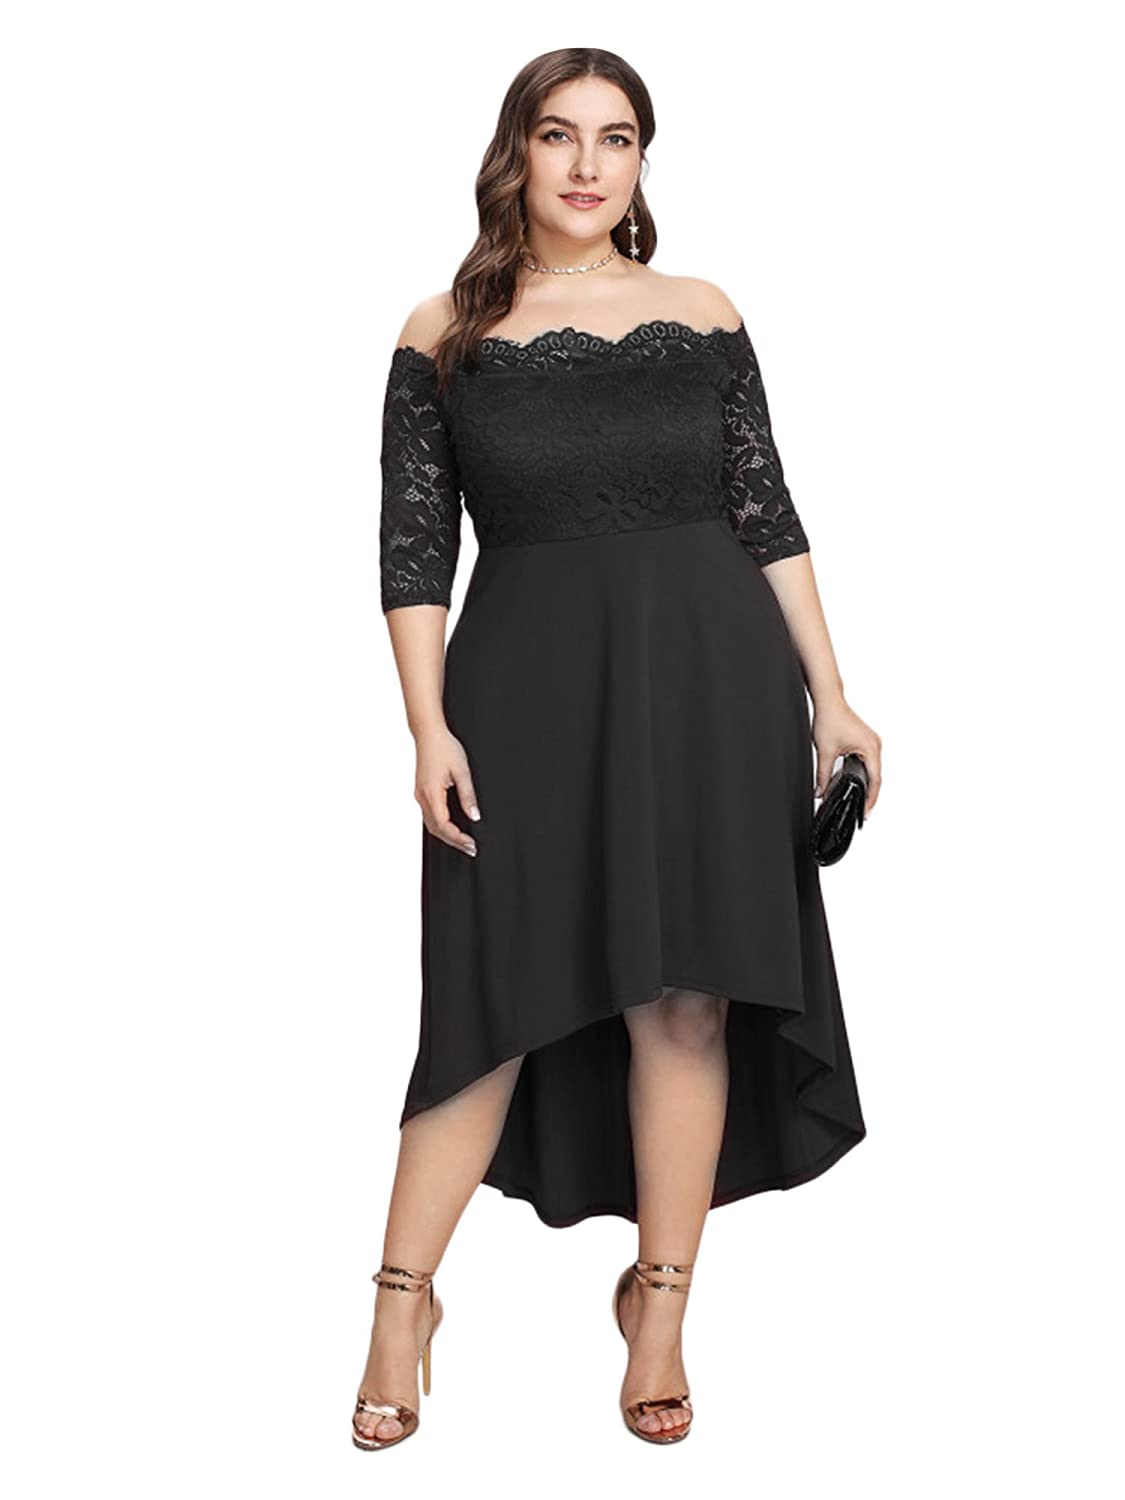 76f8f93275308 GMHO Women s Plus Size Floral Lace Off-The-Shoulder Cocktail Formal Swing  Dress at Amazon Women s Clothing store